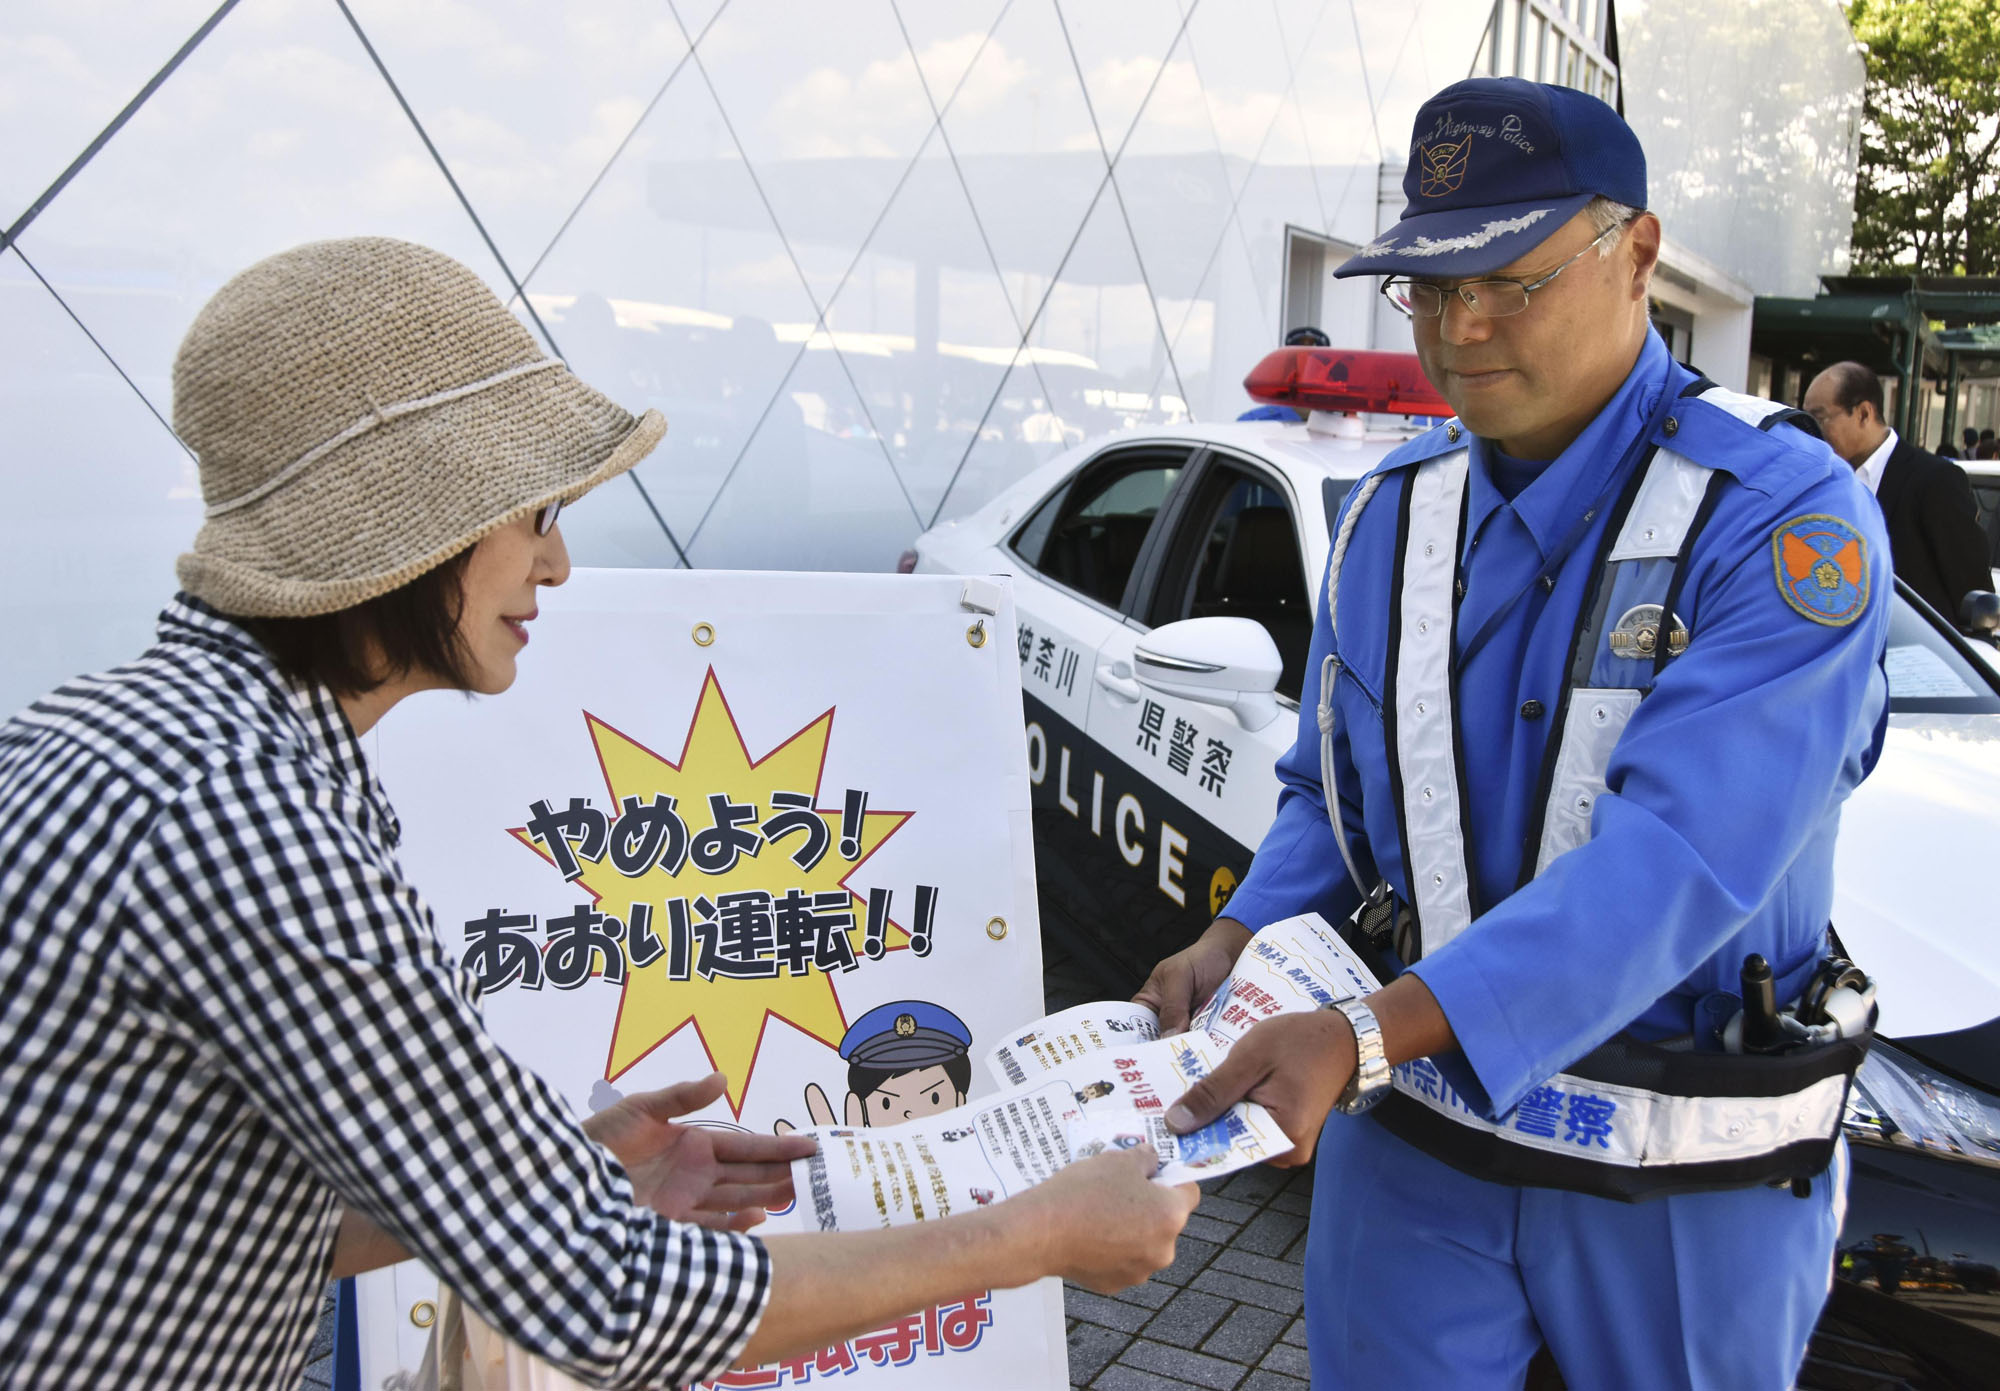 A Kanagawa Prefectural Expressway Traffic Police Unit official hands out leaflets calling for the abolishment of tailgating at the Tomei Expressway